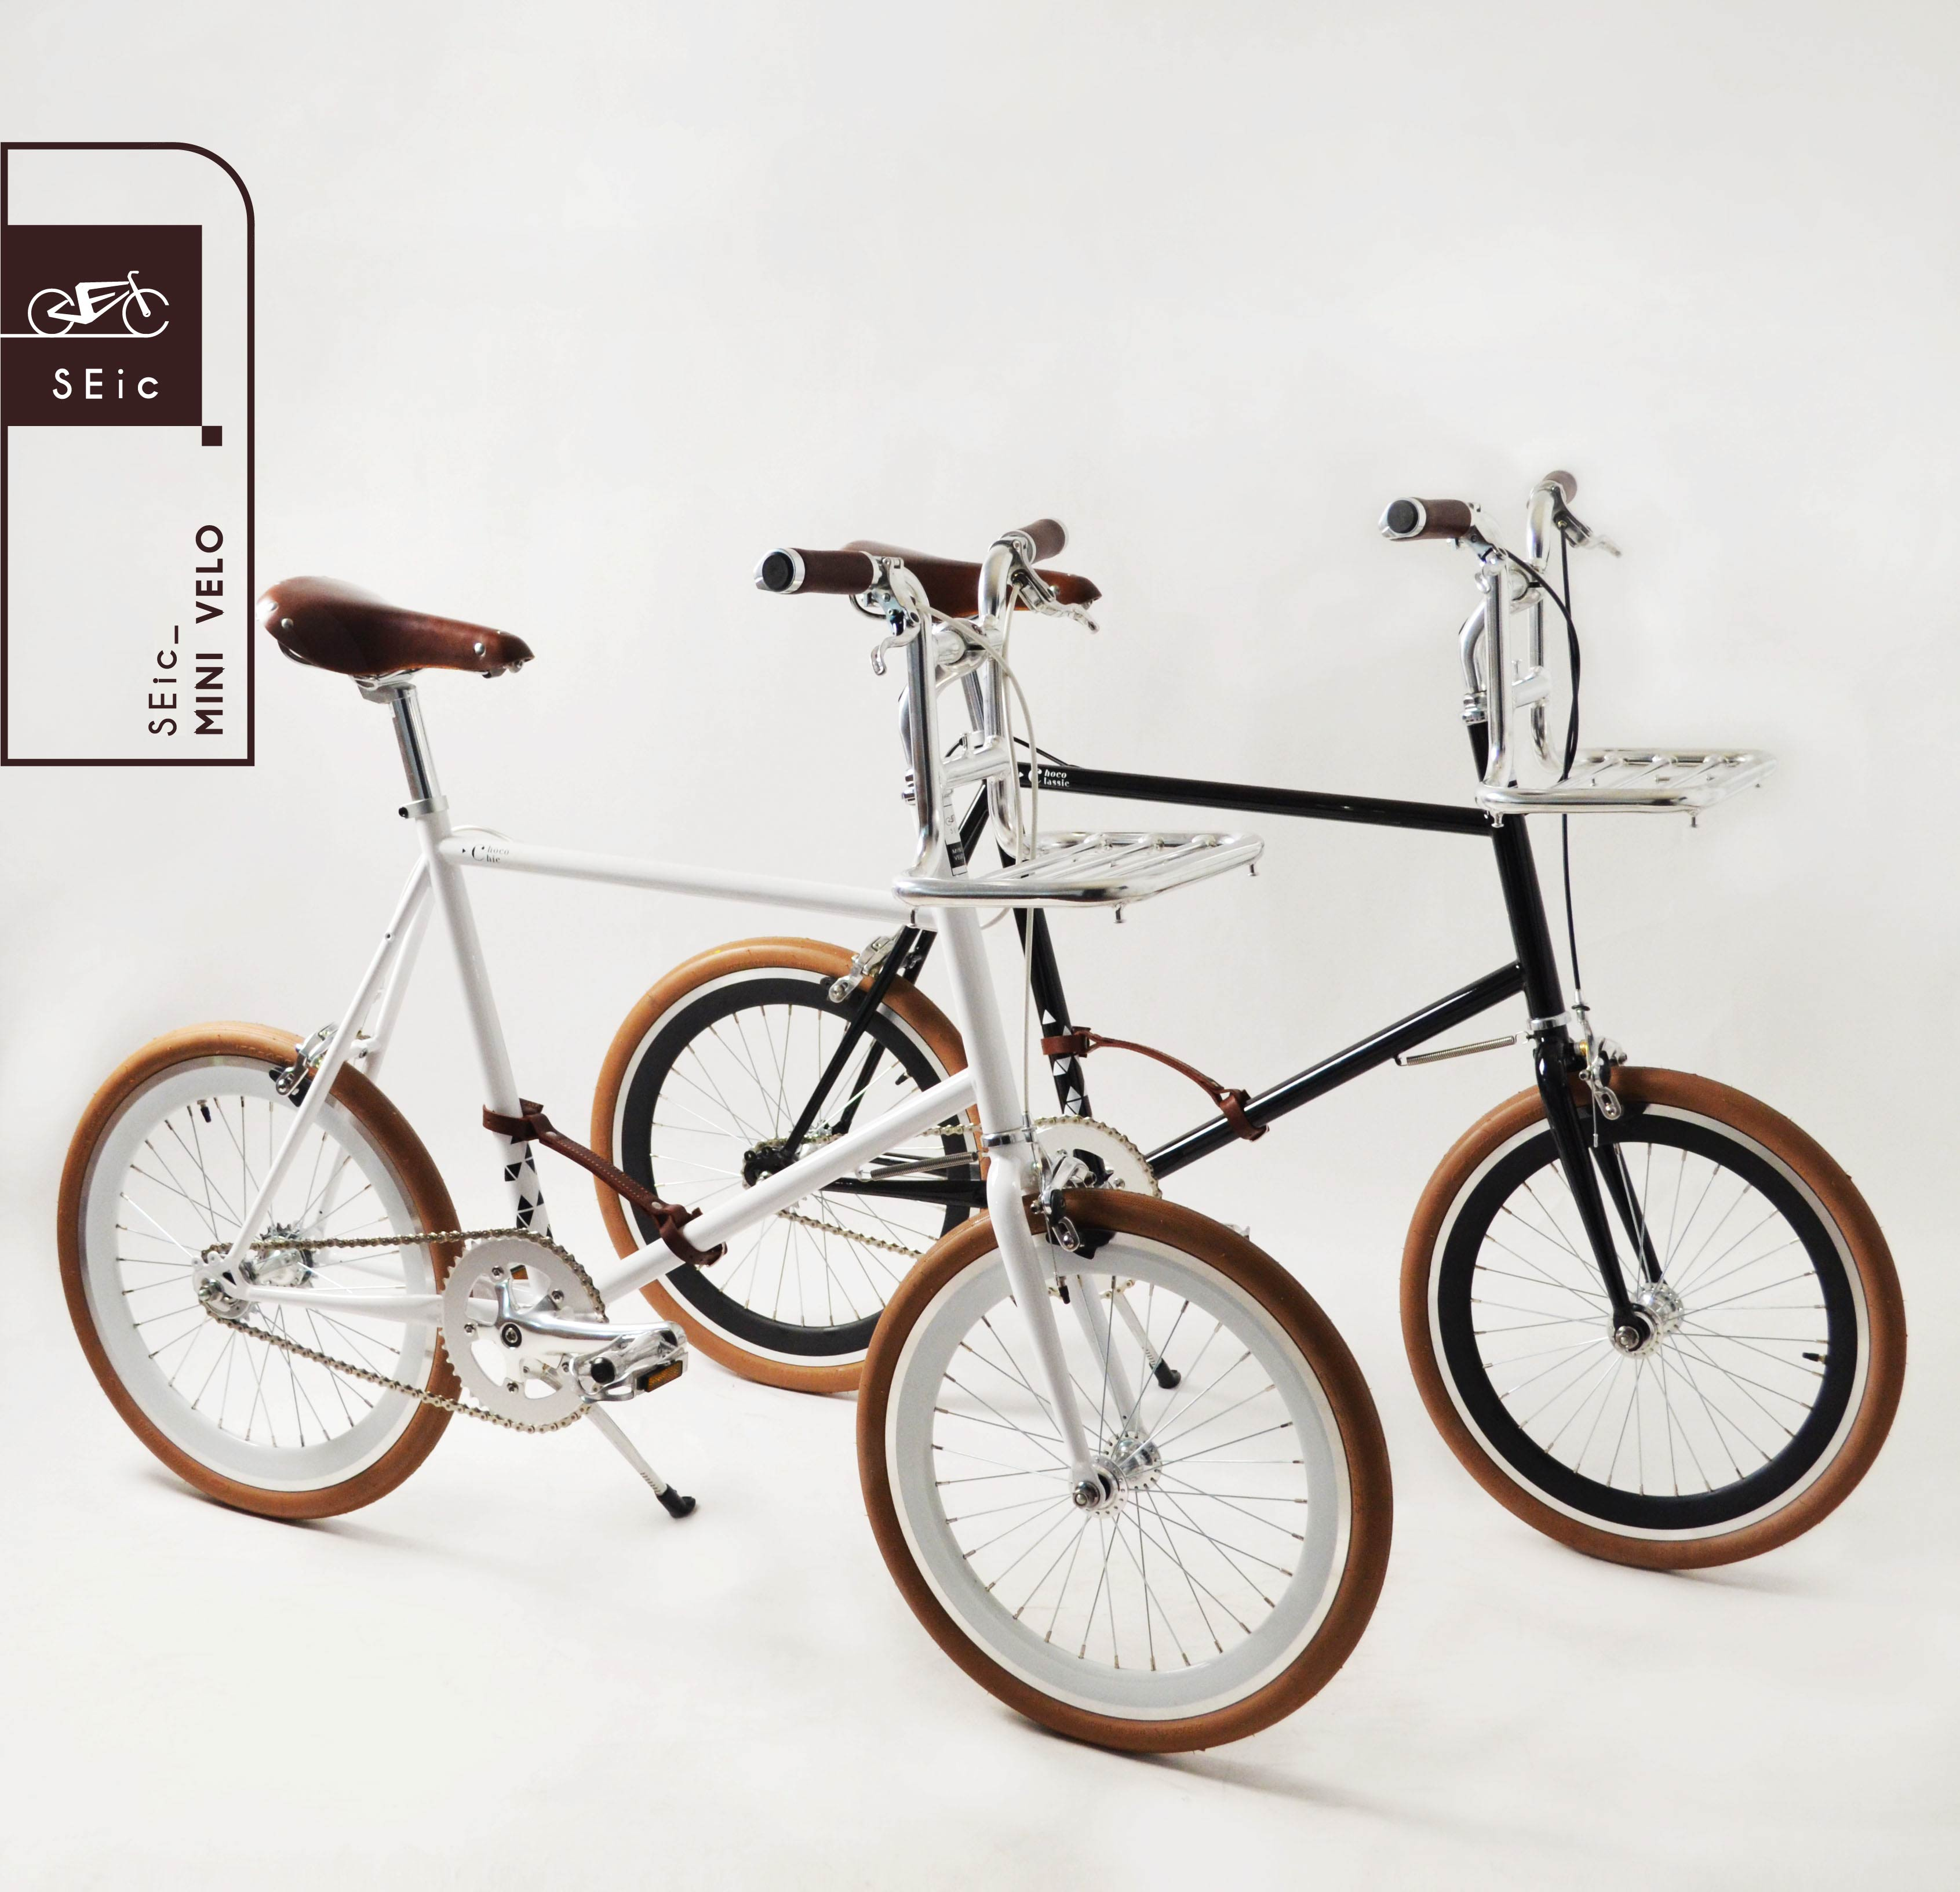 Products Seic Bikes│oem Odm Taiwan Bicycle Manufactory│